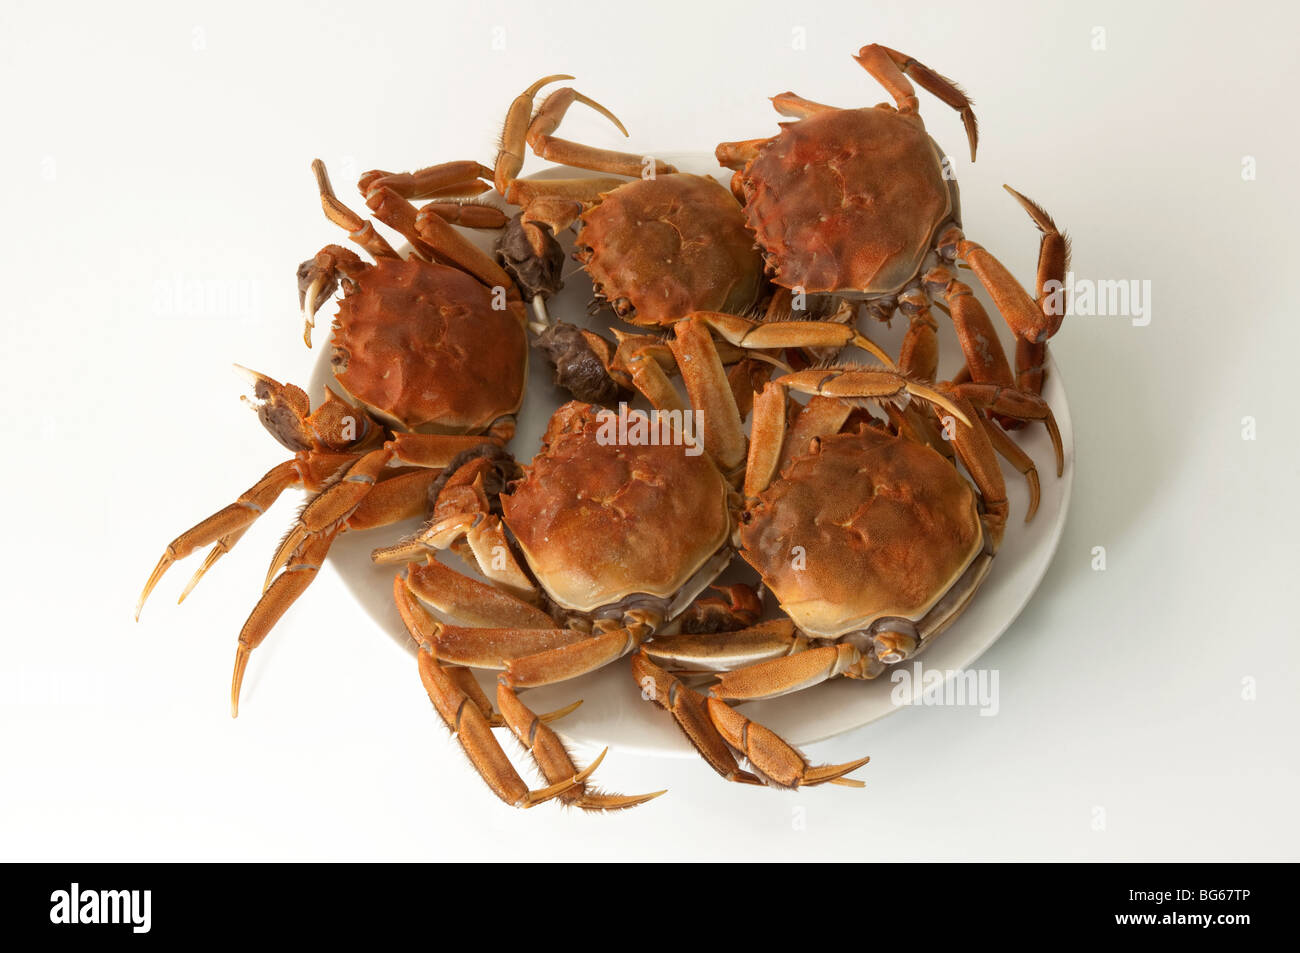 Chinese Mitten Crab (Eriocheir sinensis), cooked specimens. The crabs are a famous delicacy in Shanghai cuisine. - Stock Image